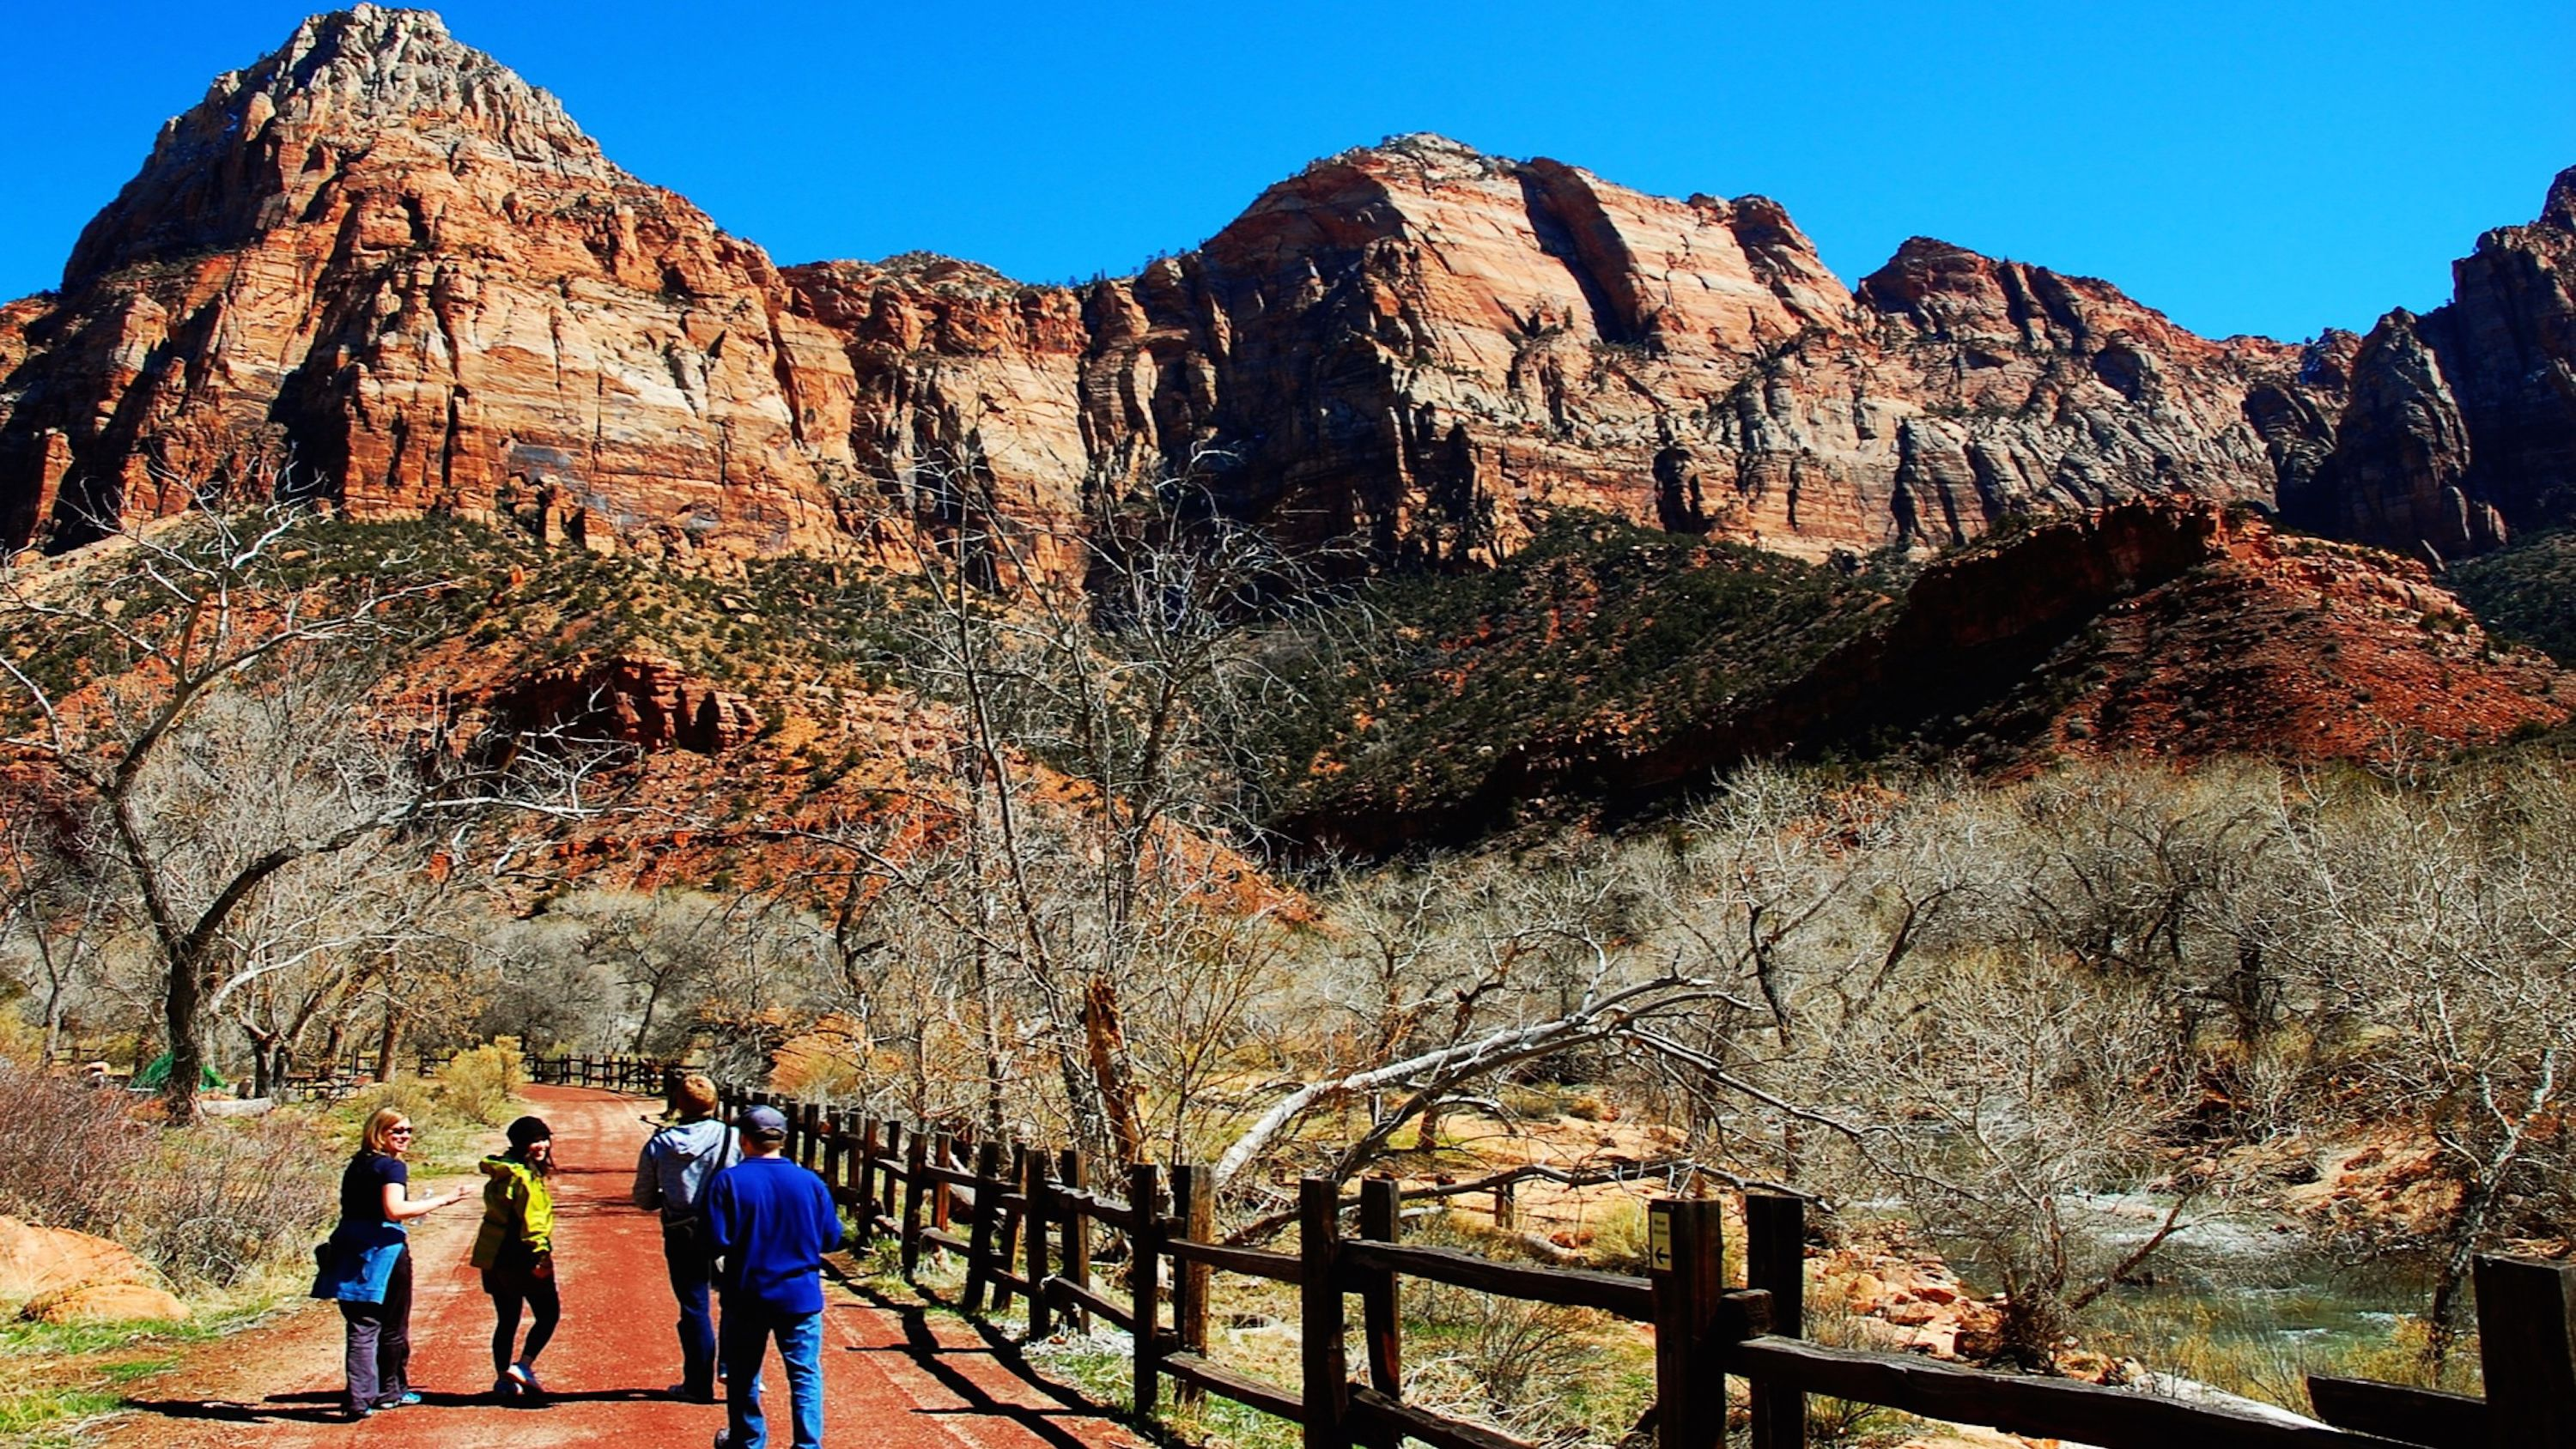 Private Zion National Park Day Tour for 5 with Expert Guide